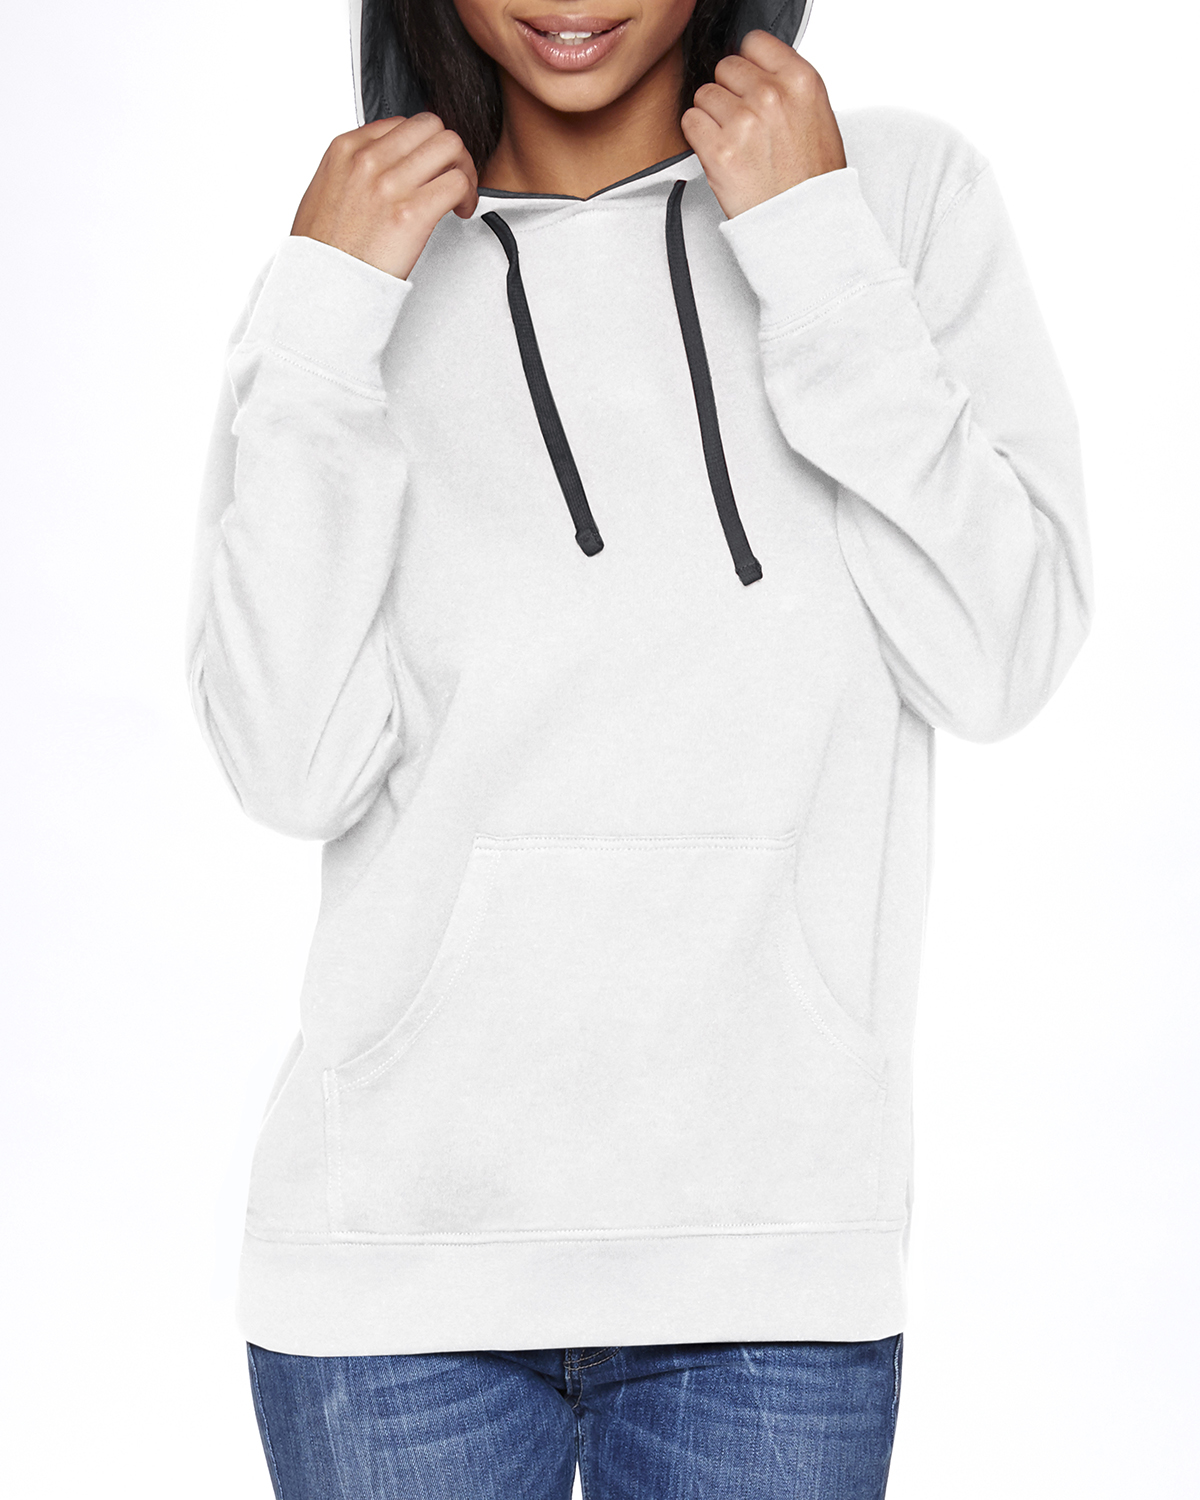 Next Level Apparel 9301 - Unisex French Terry Pullover Hoodie